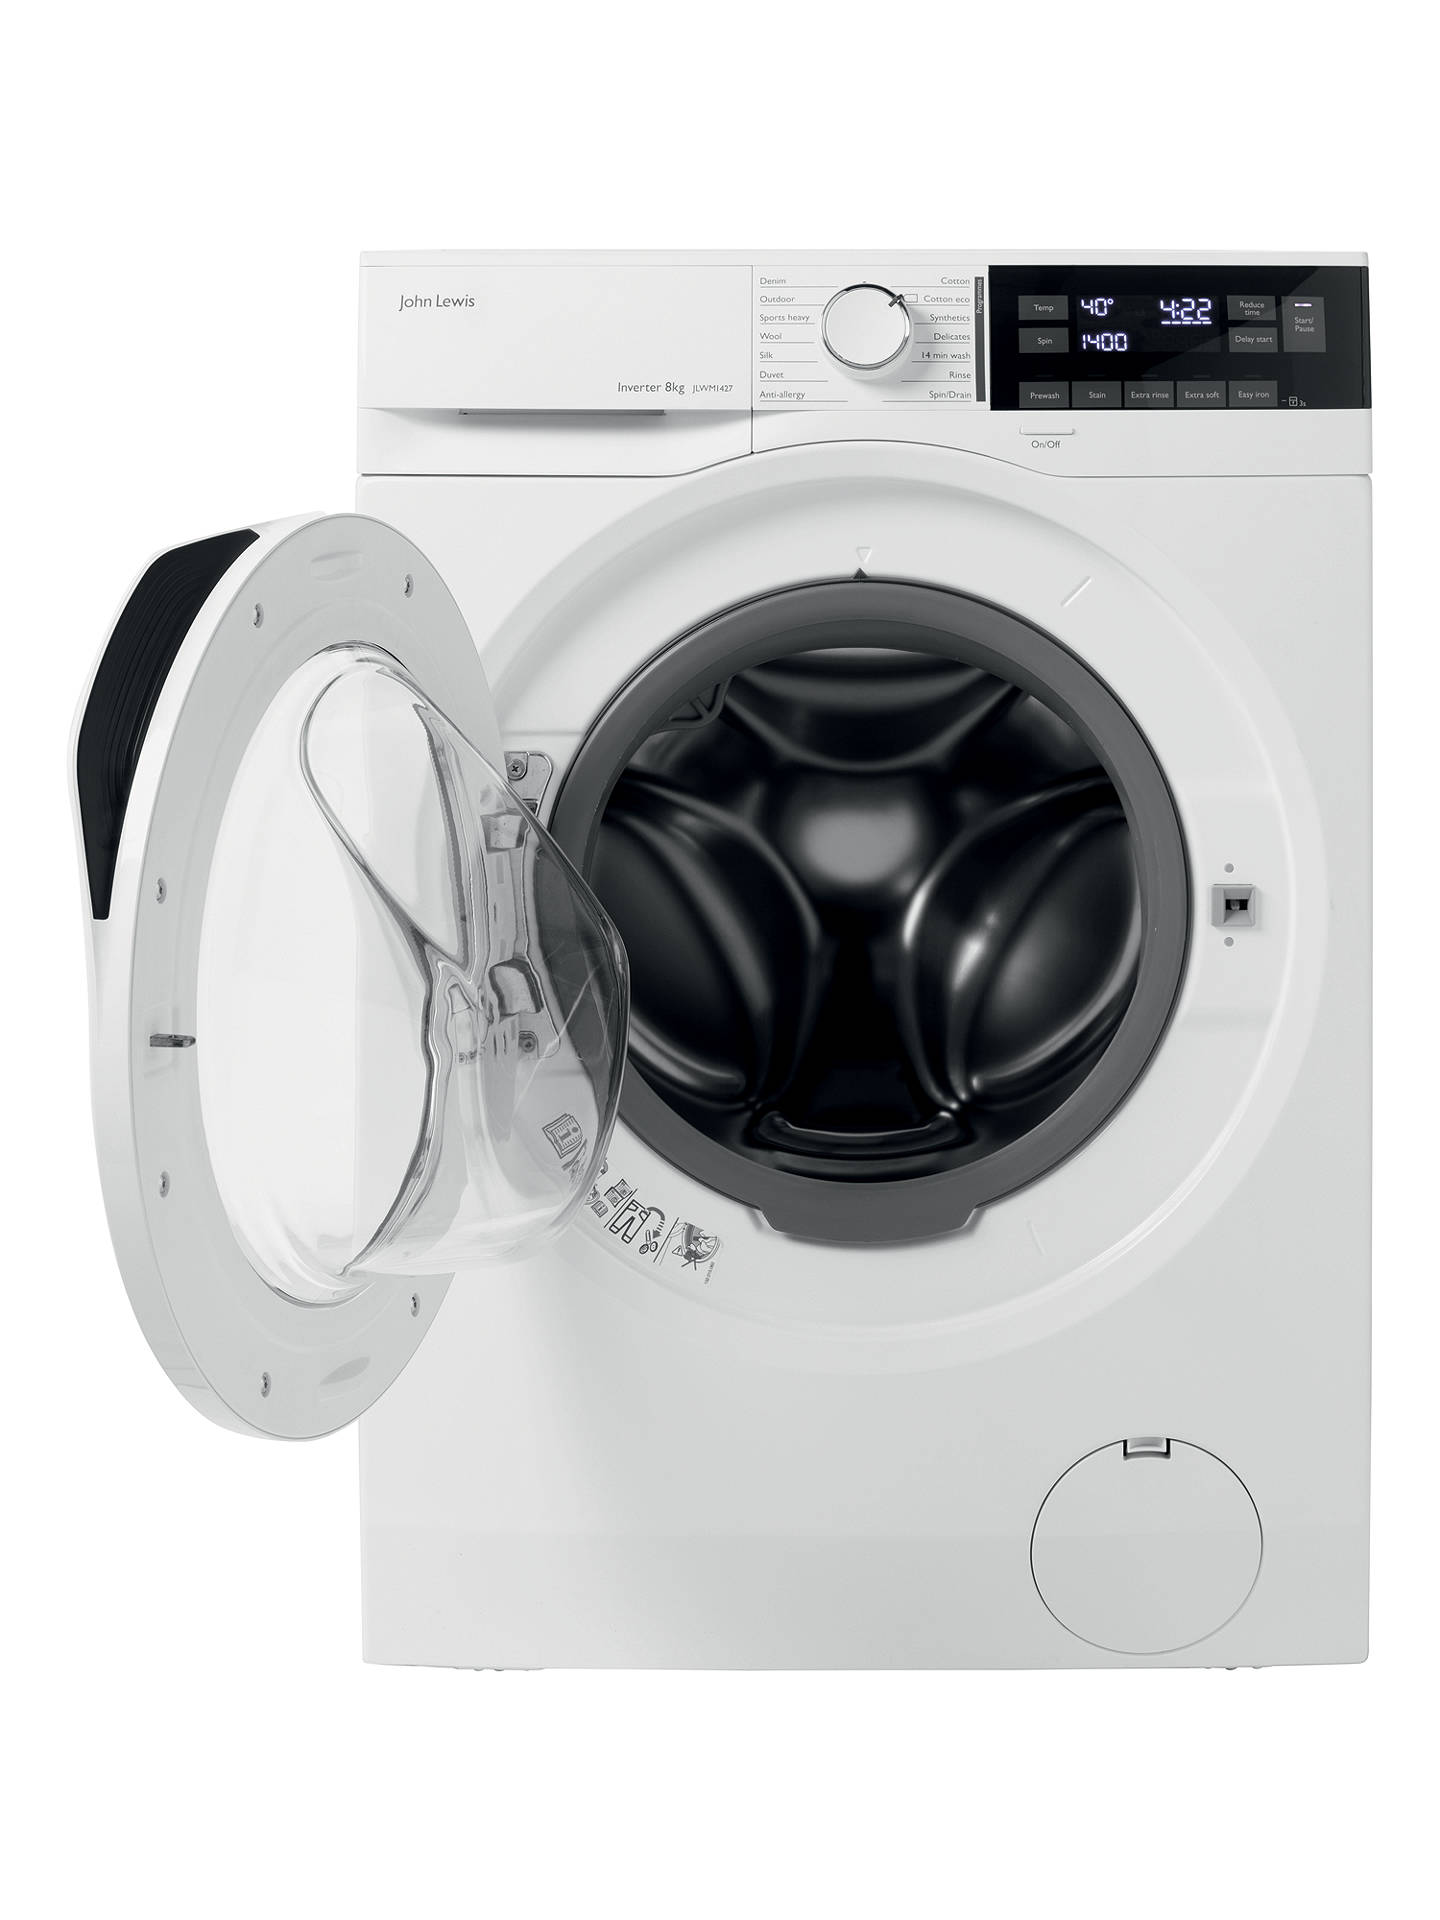 John Lewis & Partners JLWM1427 Washing Machine, 8kg Load, A+++ Energy  Rating, 1400rpm Spin, White